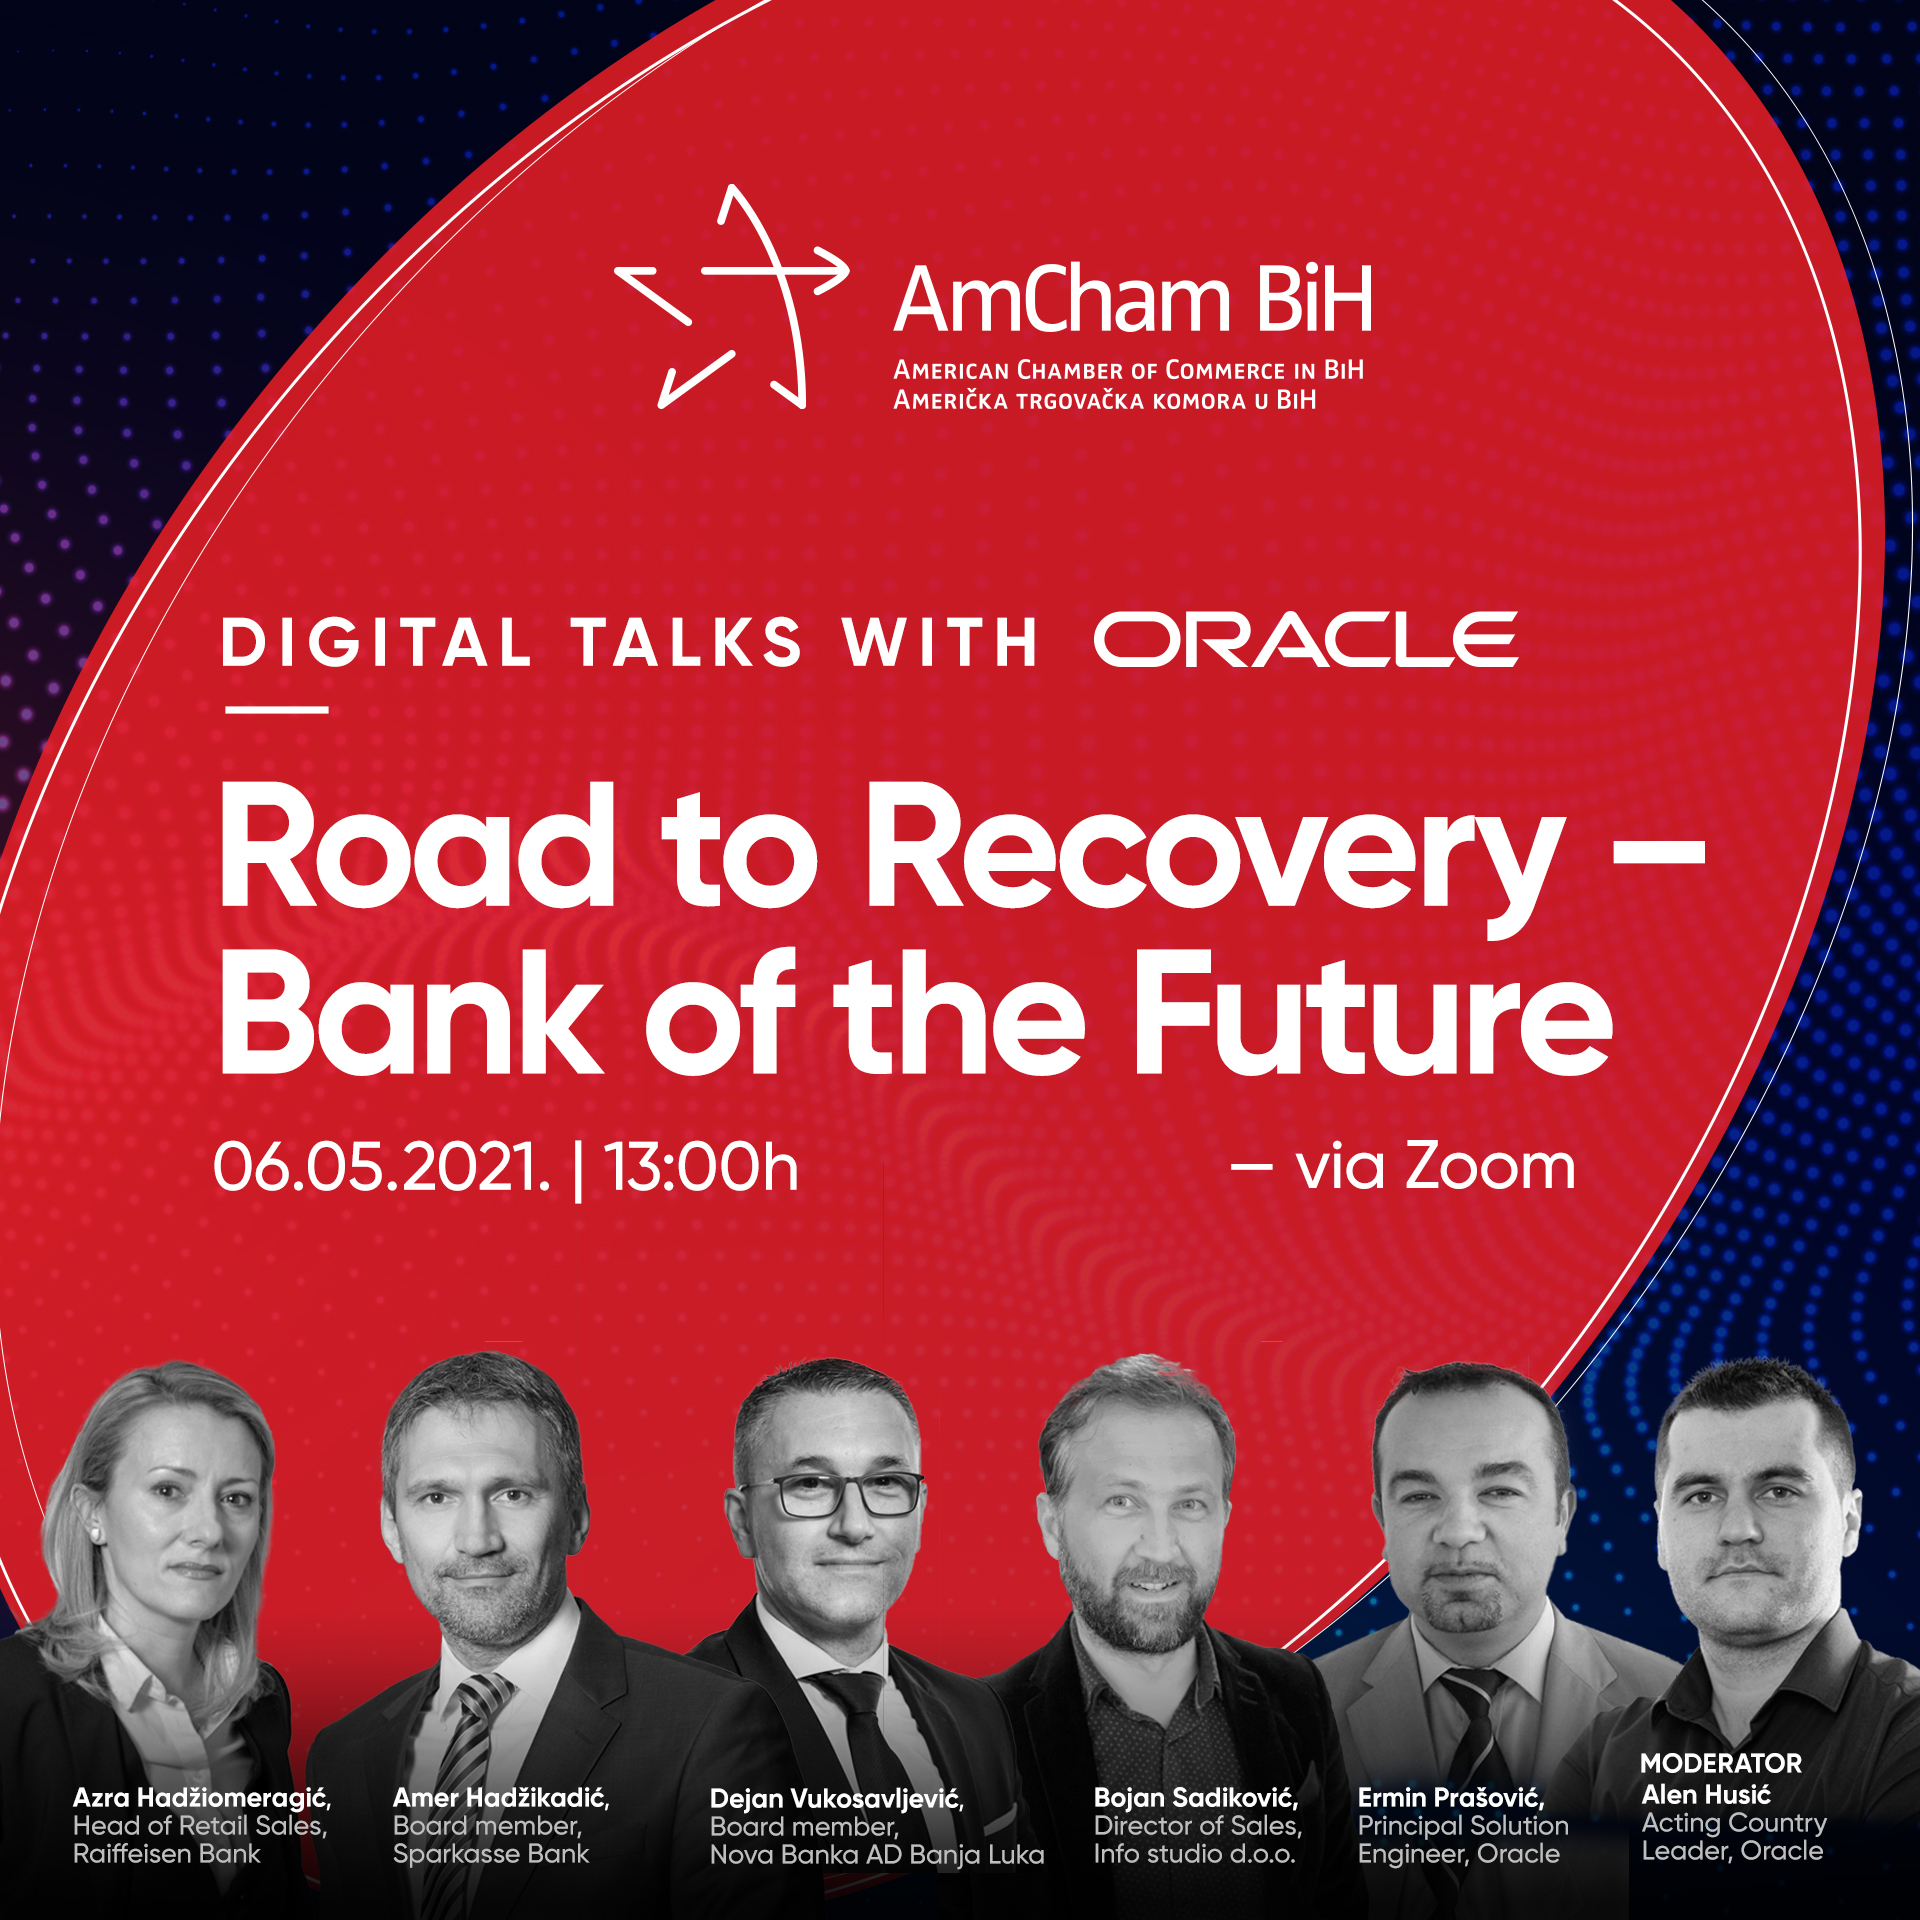 AmCham BiH Digital talks with Oracle: Road to Recovery - Bank of the Future